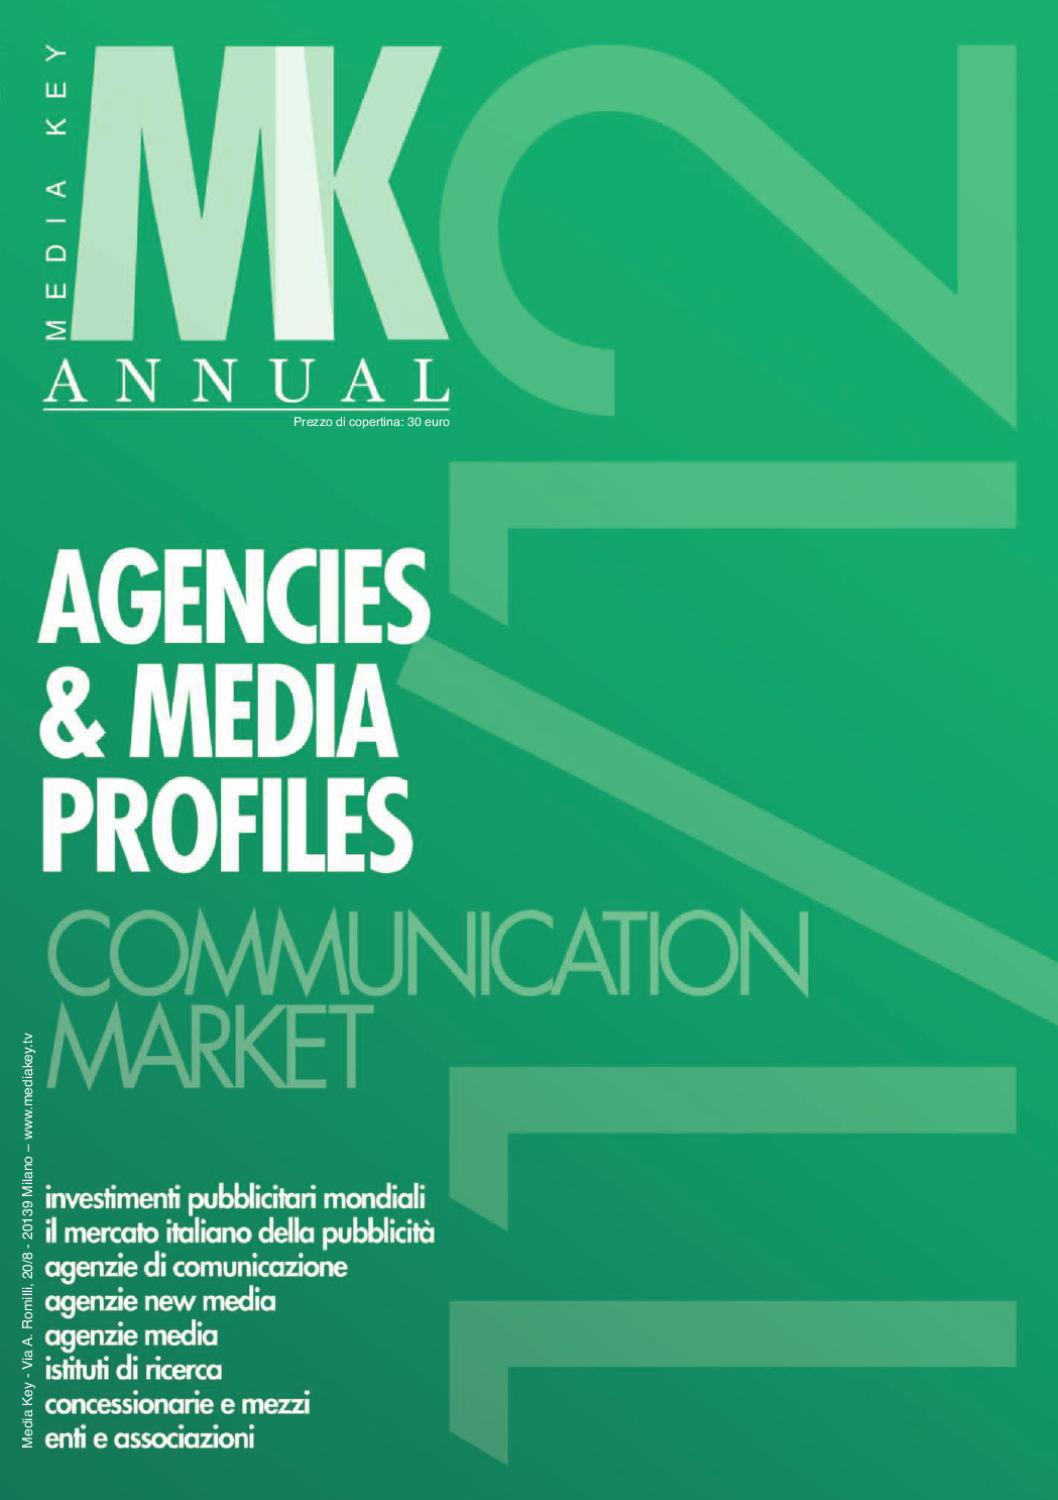 Media Key Annual 2011 by Media Key Srl - issuu bd3691d8097